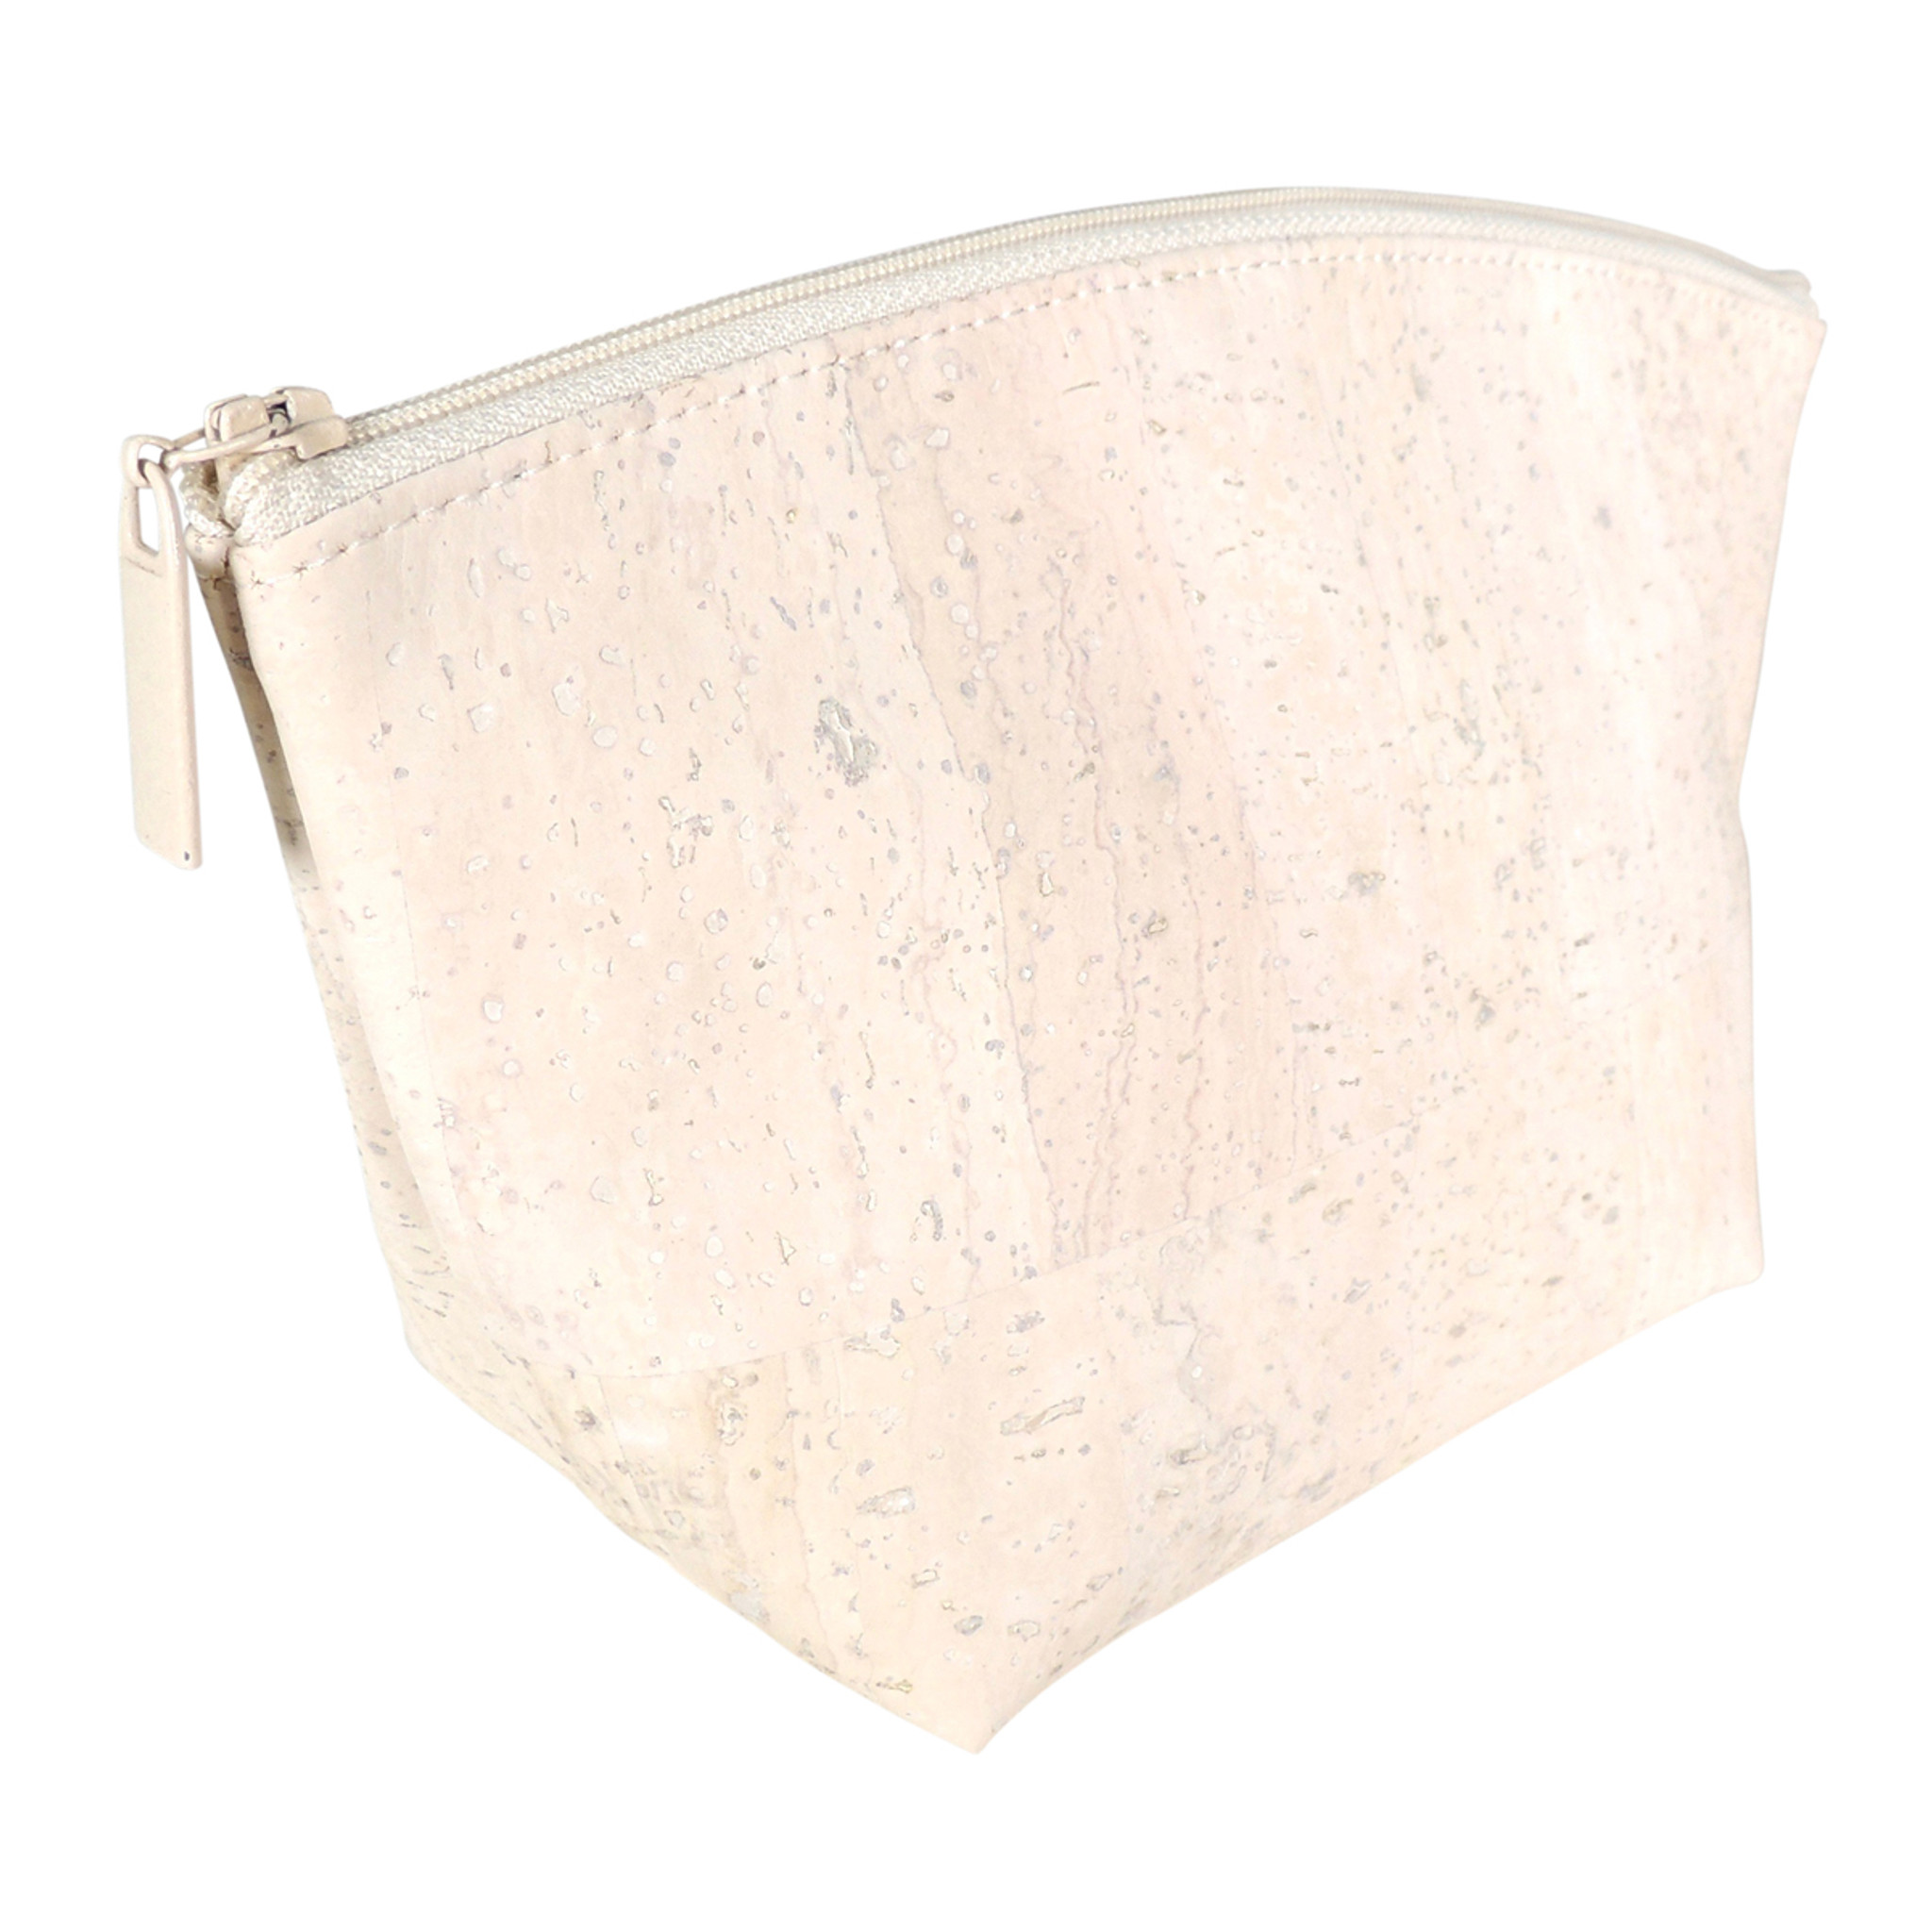 Small Standing Pouch in White Cork